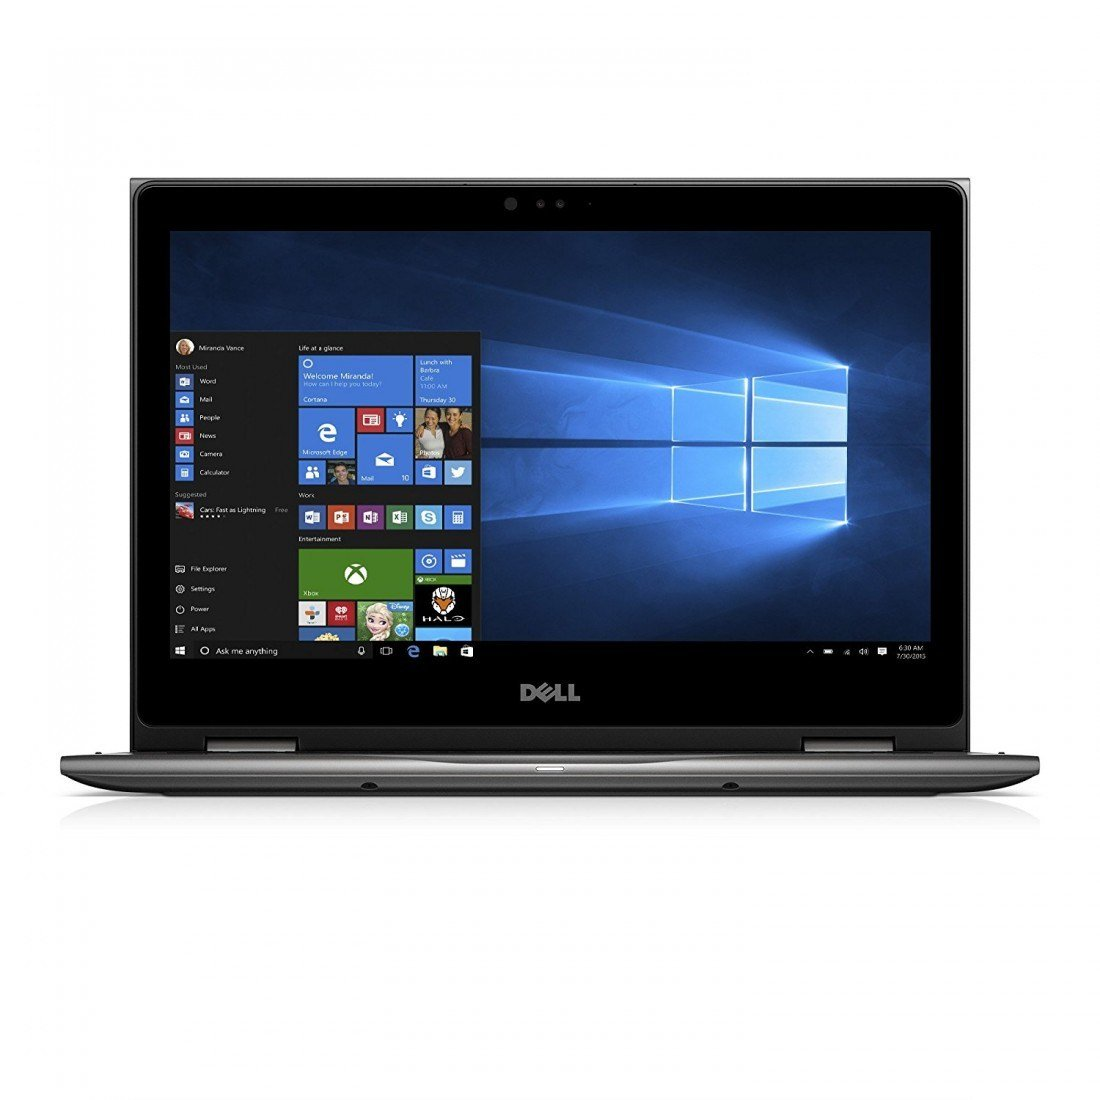 DELL INSPIRON 13 5000 SERIES (5379) (i5-8250U / 8GB RAM / 1TB HDD / INTEL UHD GRAPHICS / FULL HD TOUCH / WIN 10) фото 1 магазина компьютерной техники luckylink.kiev.ua.